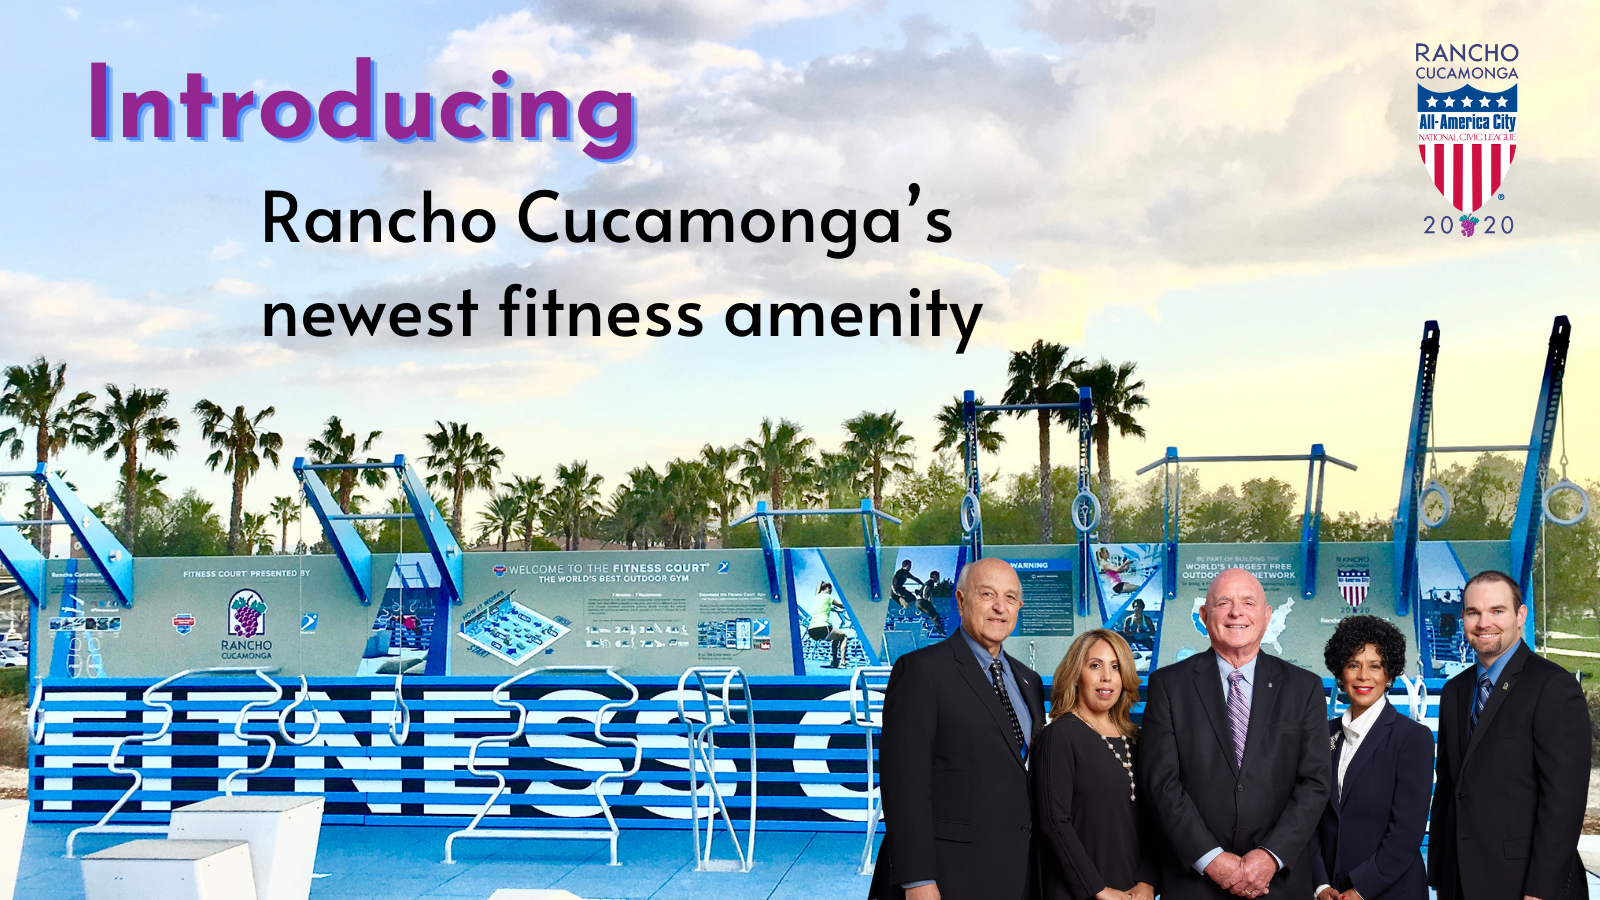 Introducing Rancho Cucamonga's newest fitness amenity. Picture of outdoor fitness court with city council